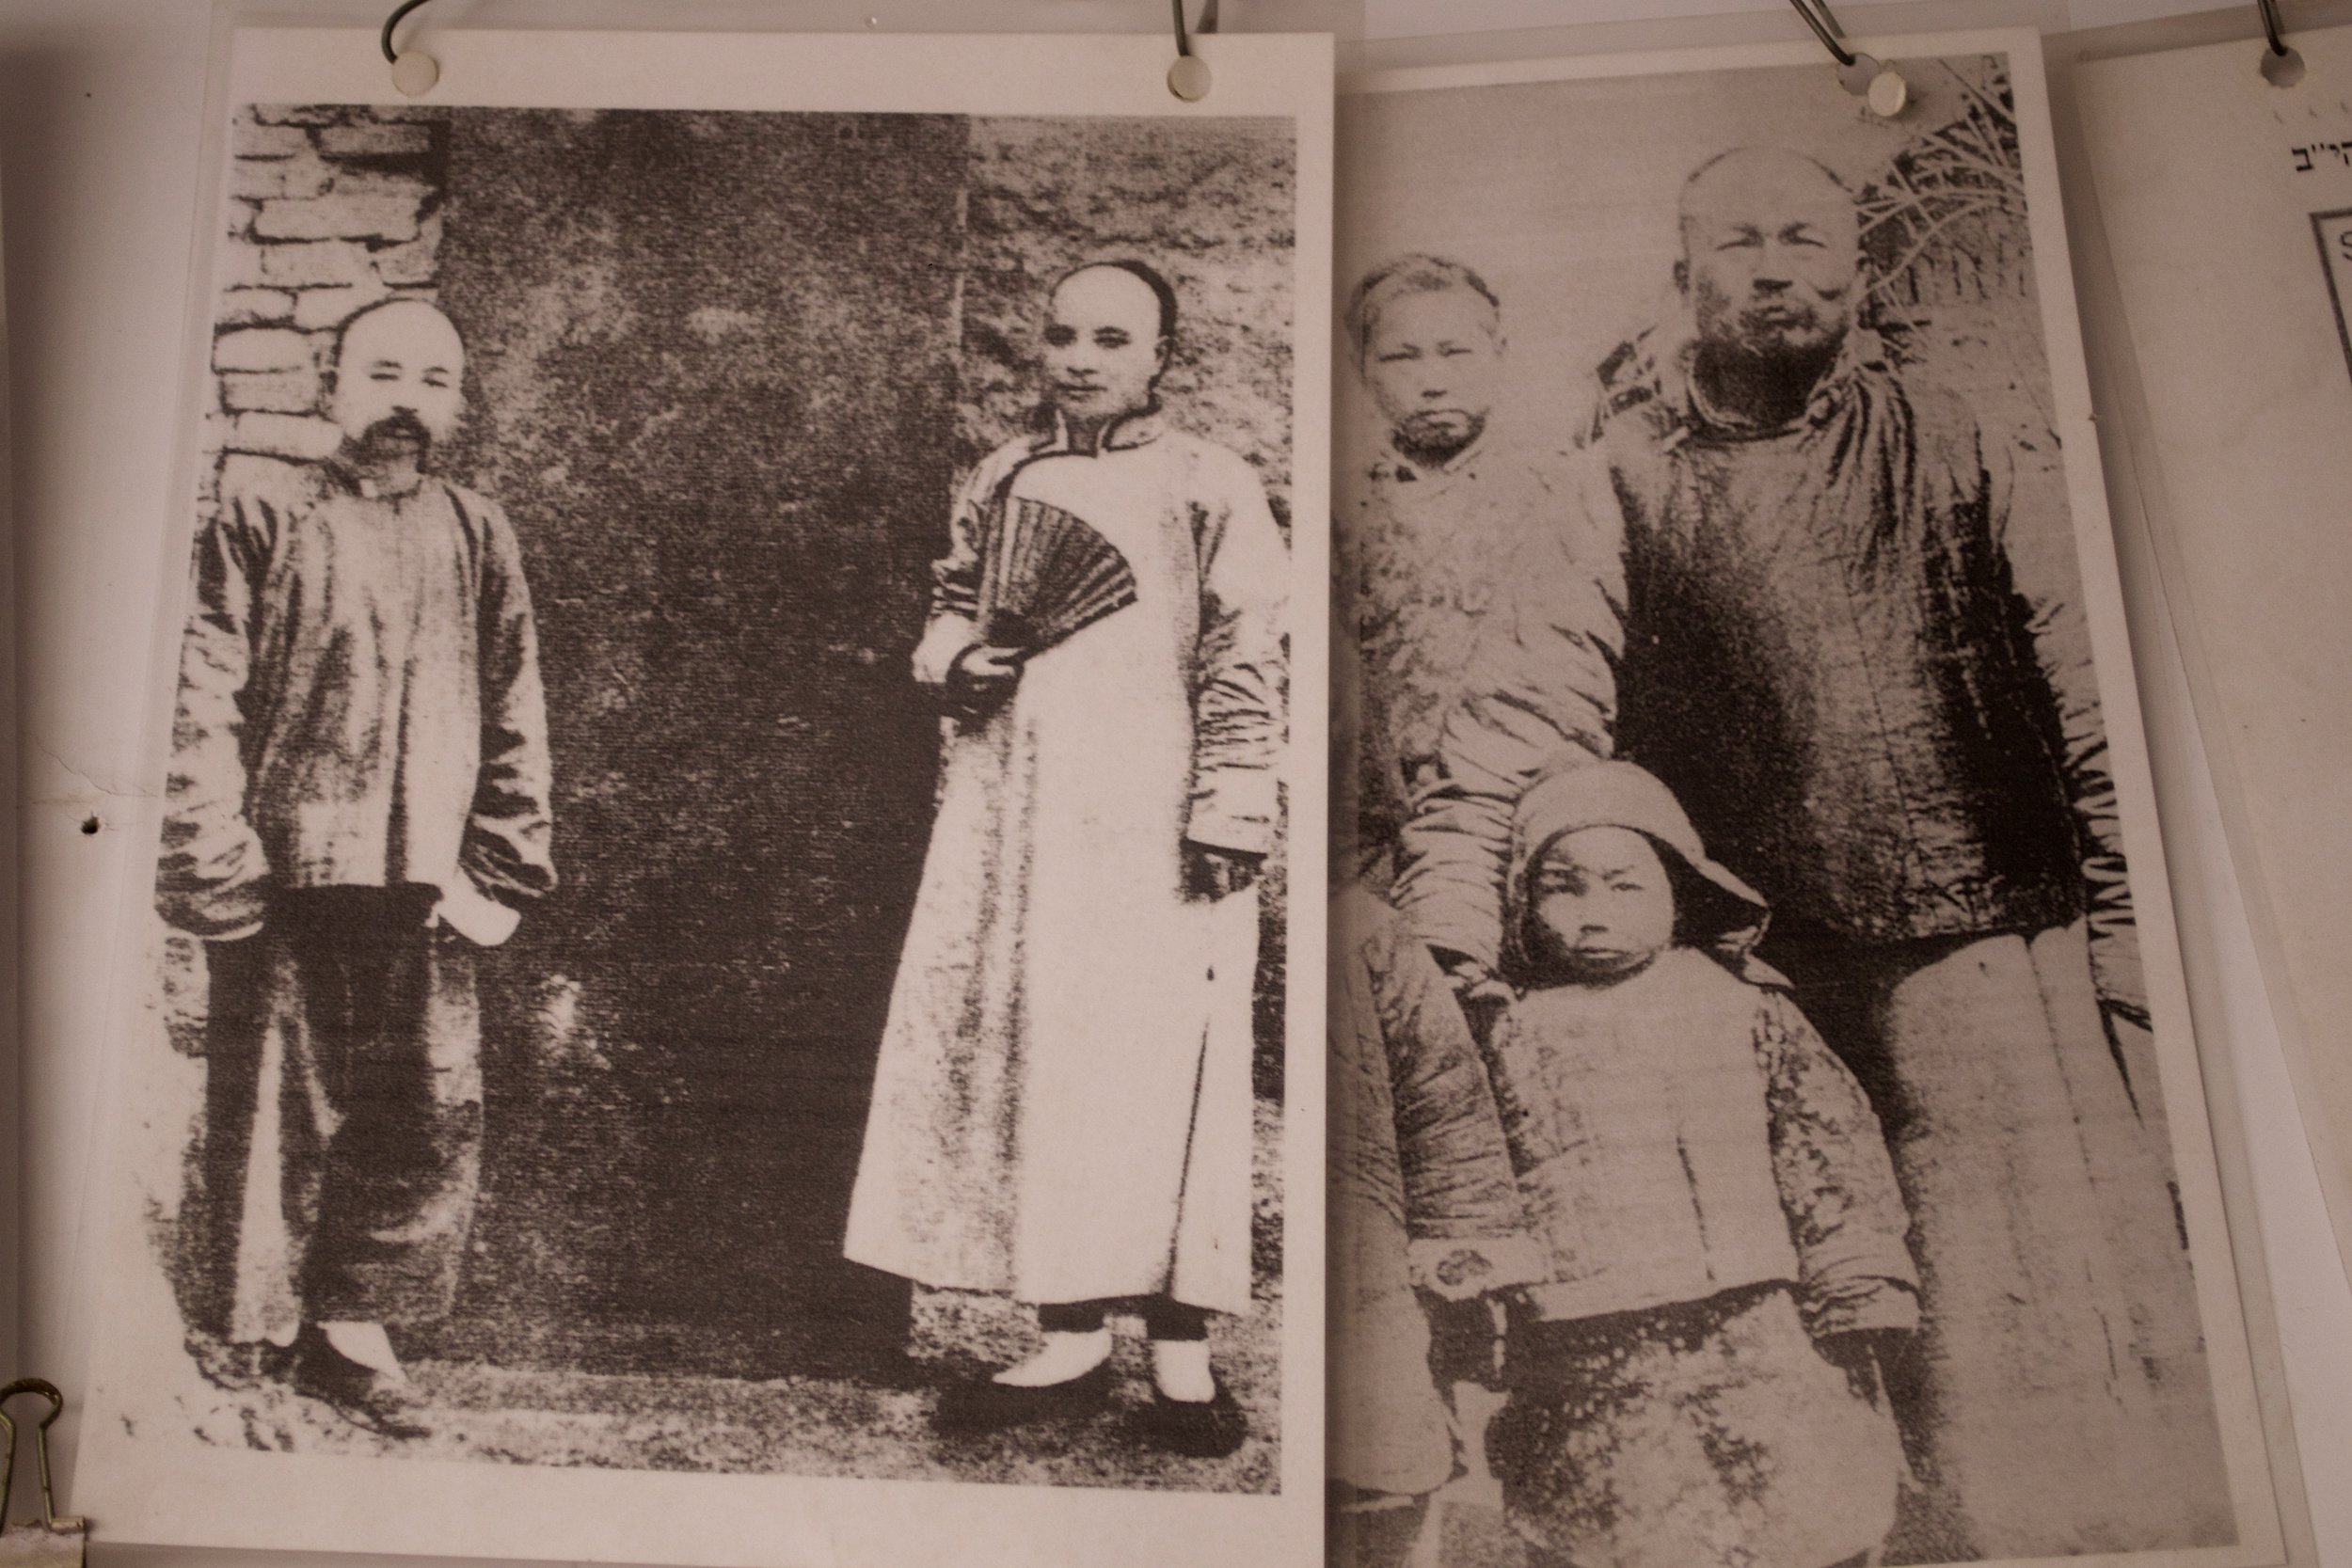 Kaifeng Jews from the early 20th century.  [Kaifeng Jewish History Memorial Center]